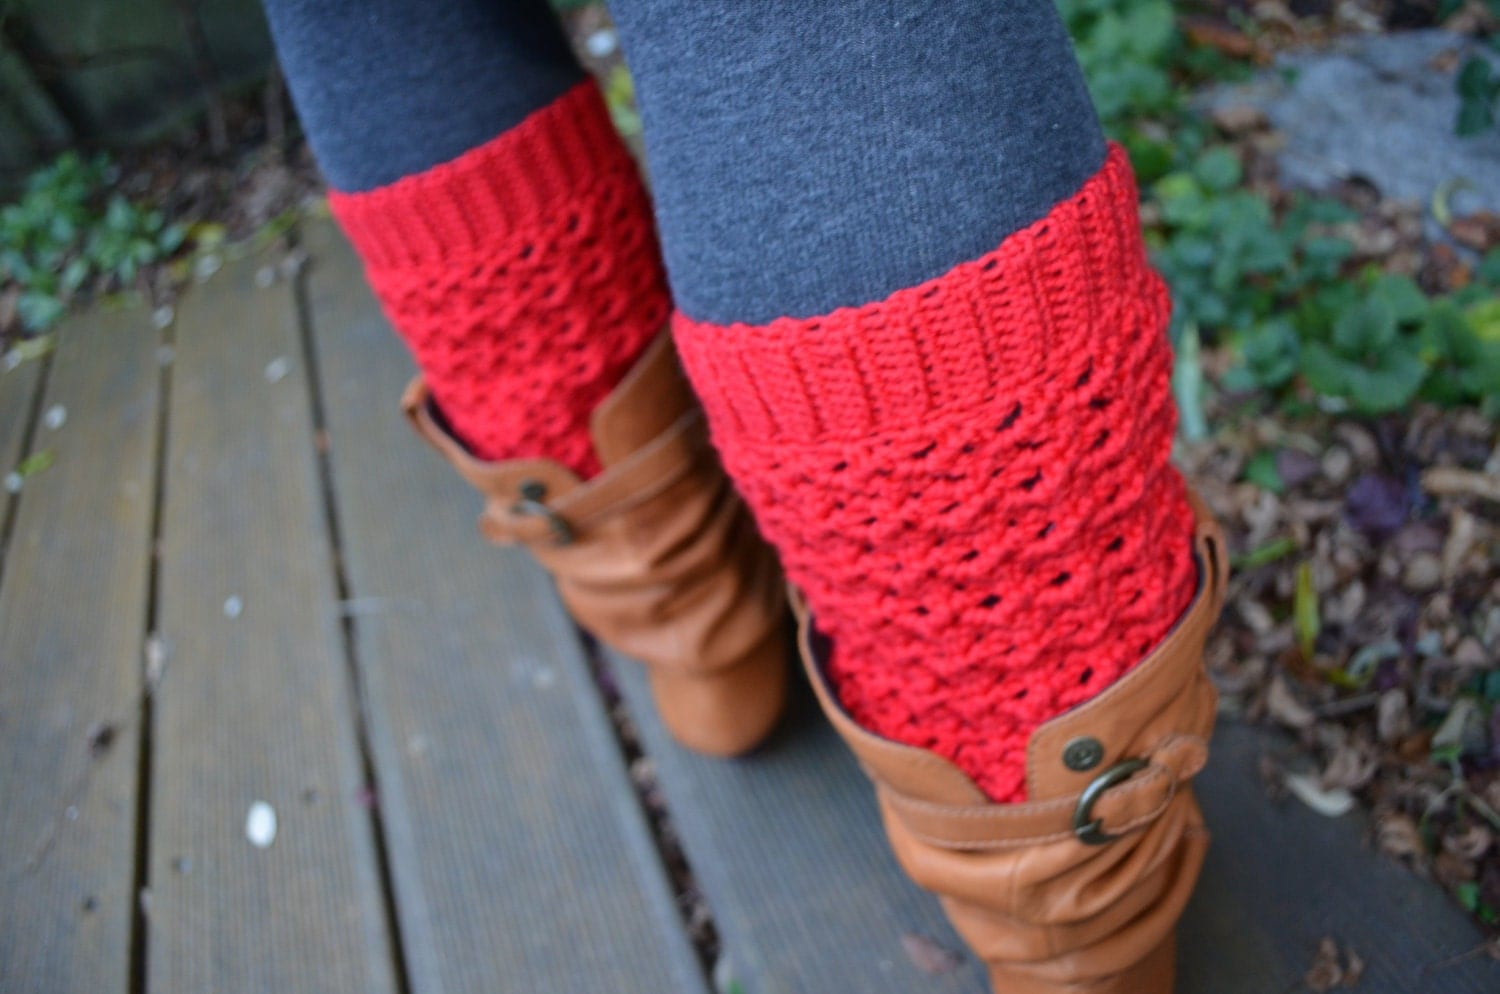 Crochet Free Patterns For Leg Warmers : Crochet pattern : lacy leg warmers by vicarno on Etsy